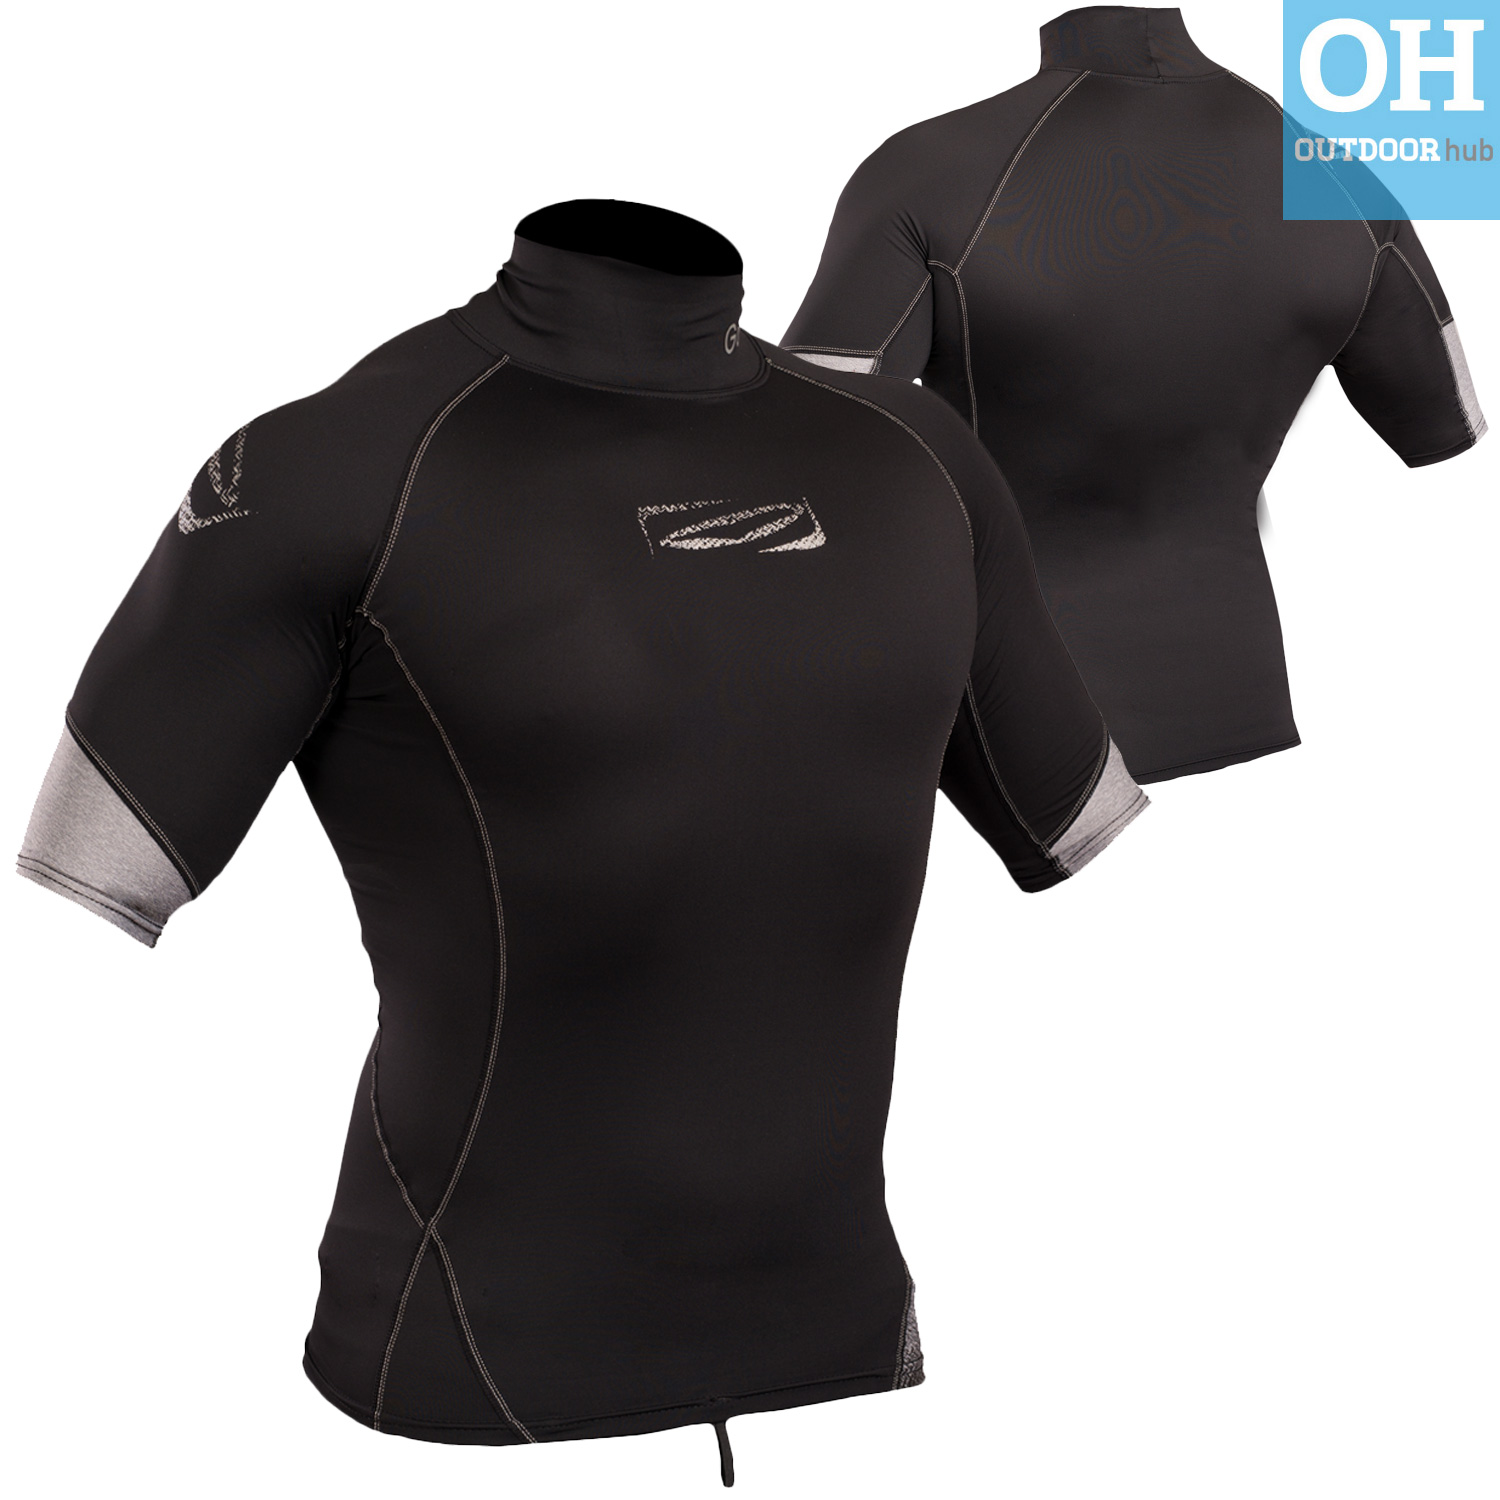 Gul-Xola-Mens-Short-Sleeve-Rash-Guard-Vest-Wetsuit-Top-UV-50-Surf-Swim-Dive thumbnail 8